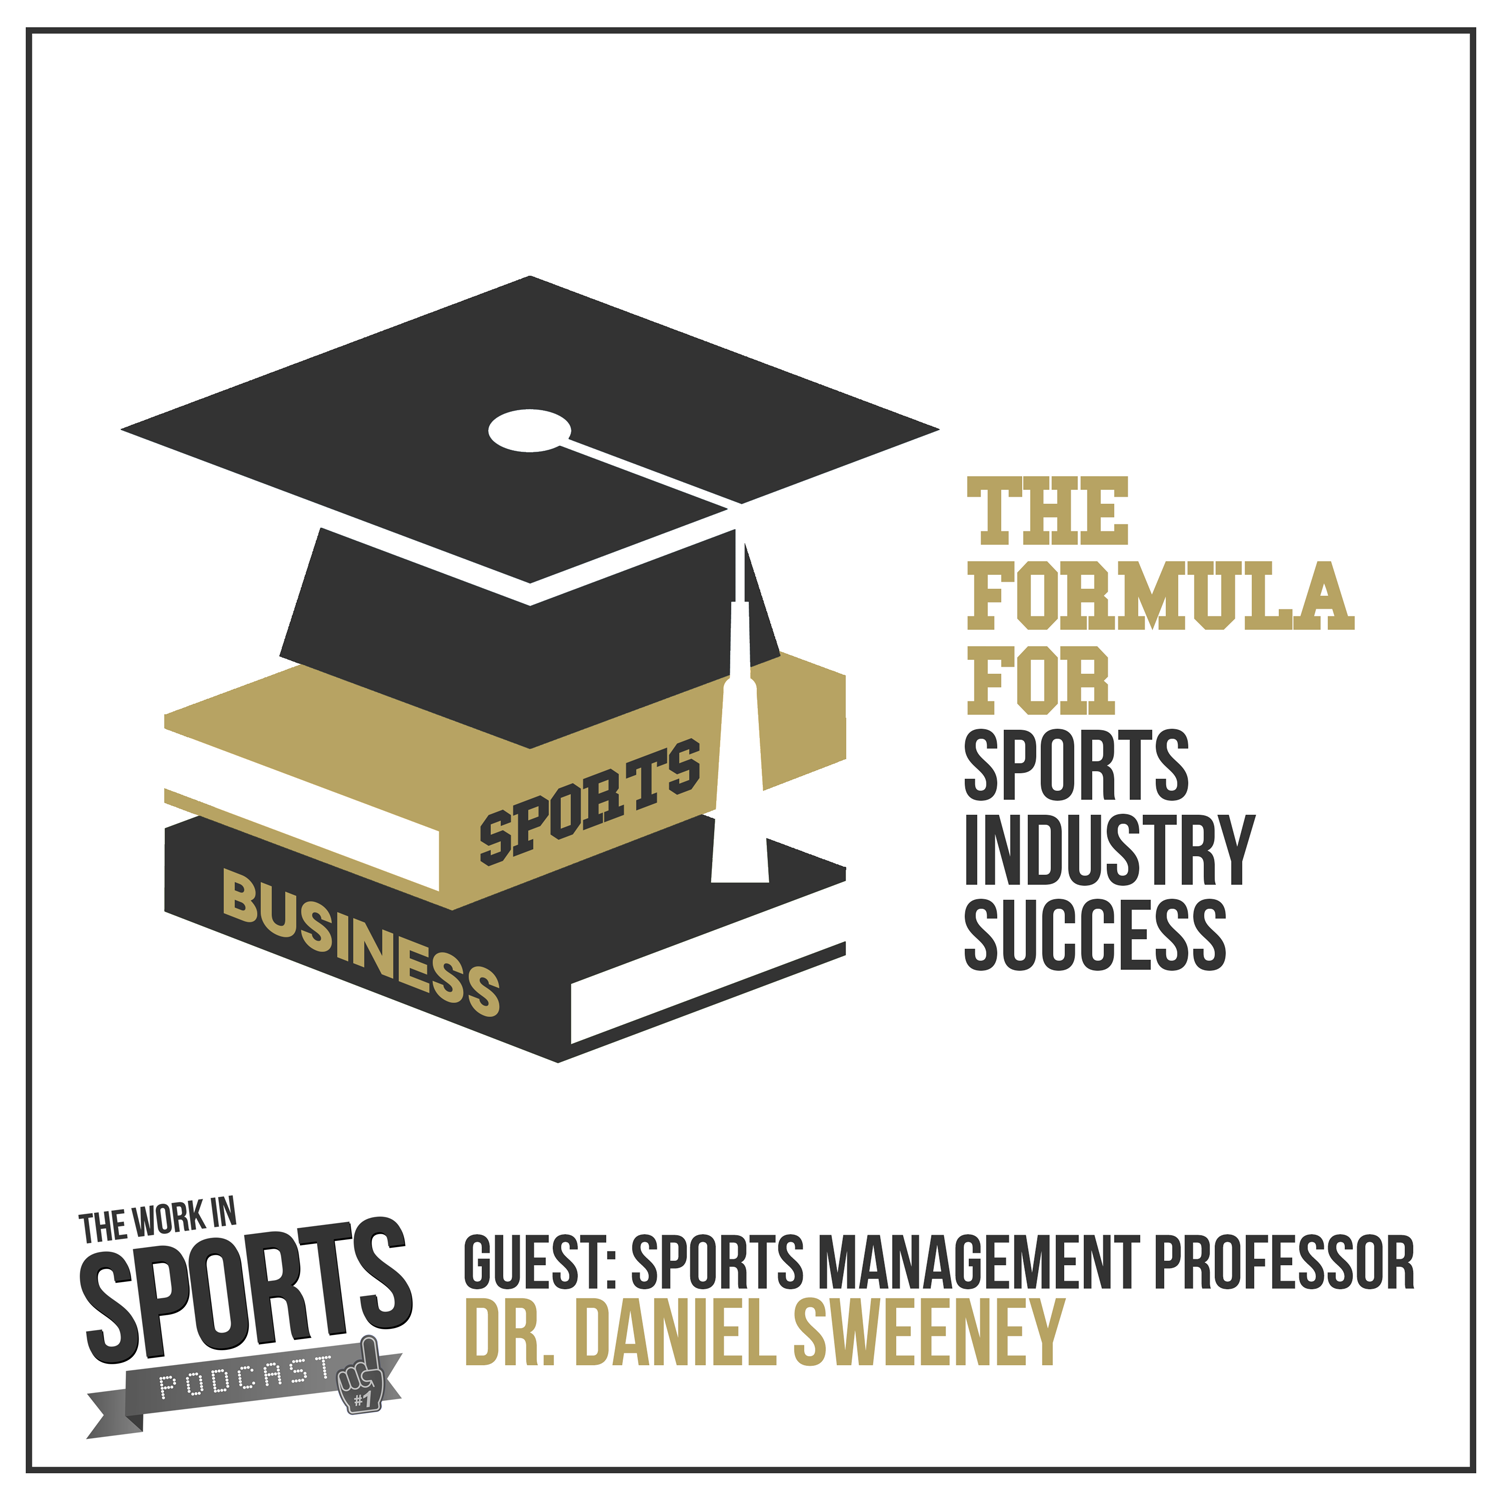 the formula for sports career success